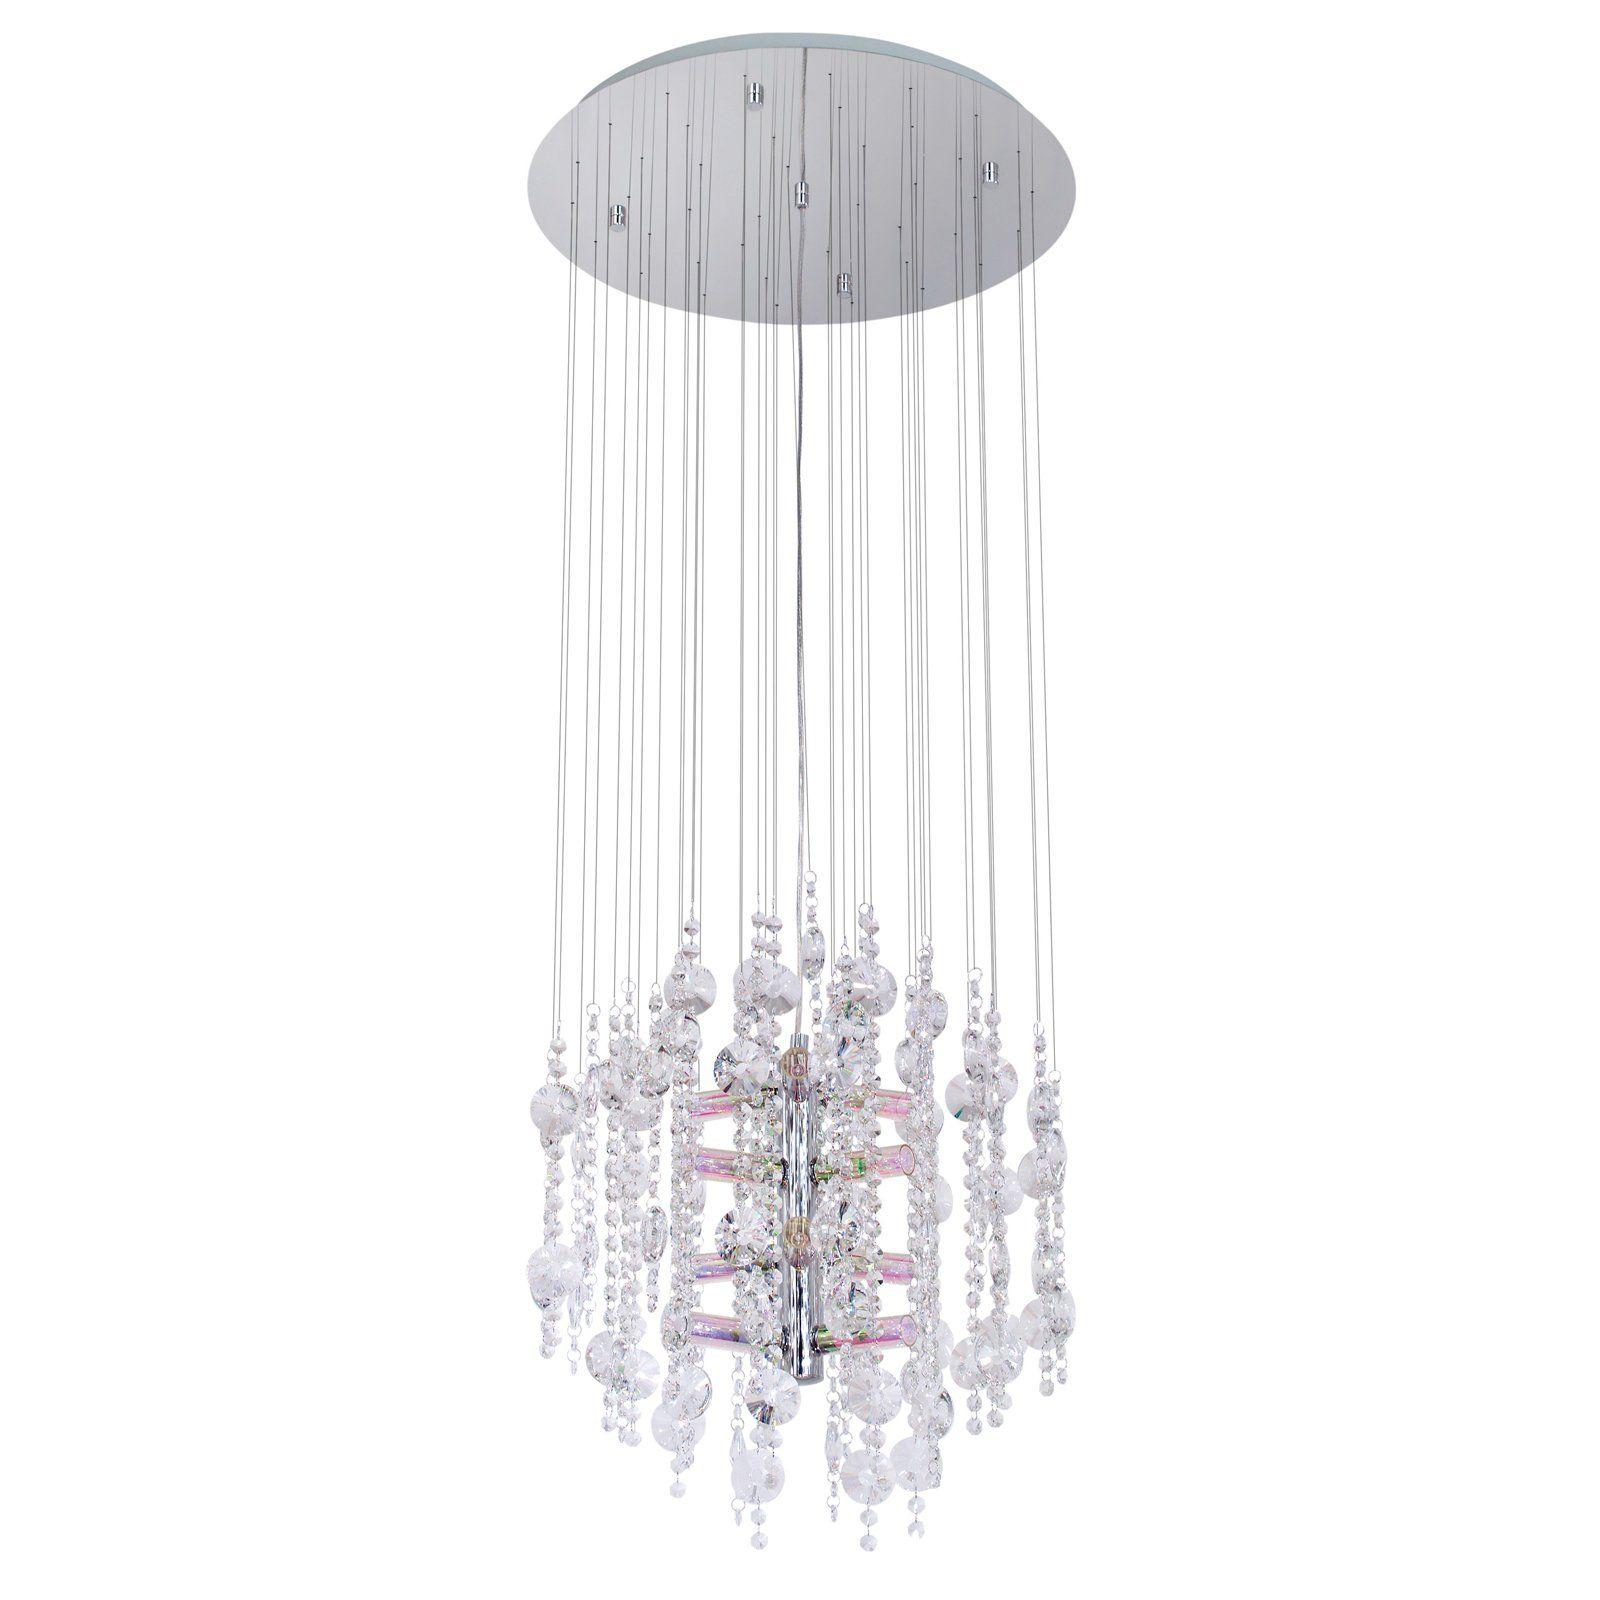 Eglo Usa Alexandria Hanging Light Shimmering Crystals Suspend From The Adds Brilliant Style This Features